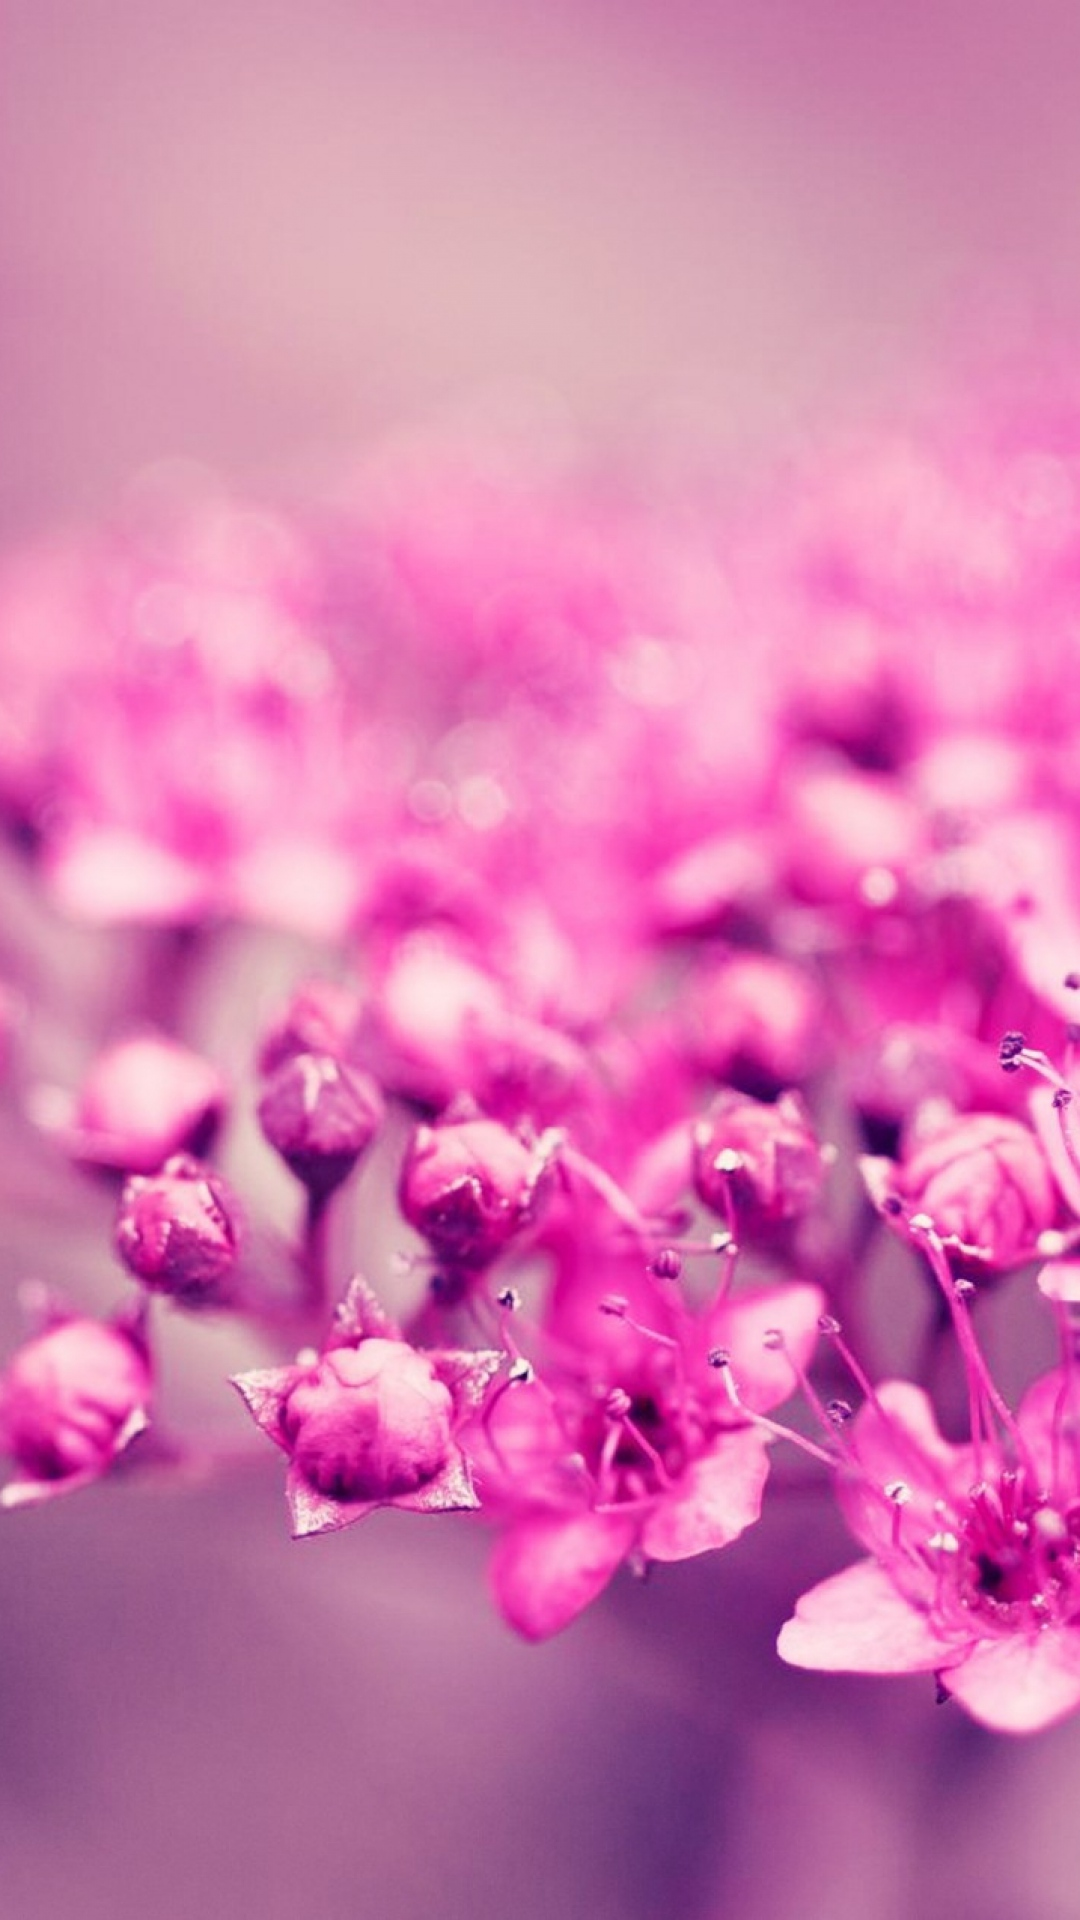 Htc One M8 Wallpaper Hd Pink Flowers Summer Best Htc One Wallpapers